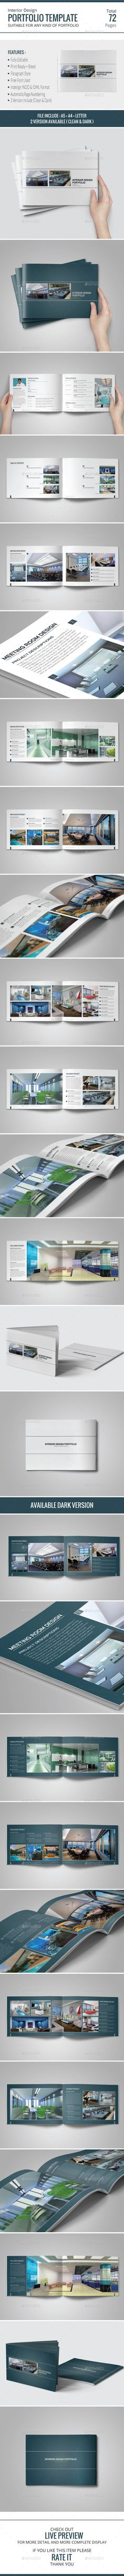 Interior Design Portfolio Template InDesign INDD O Available Here